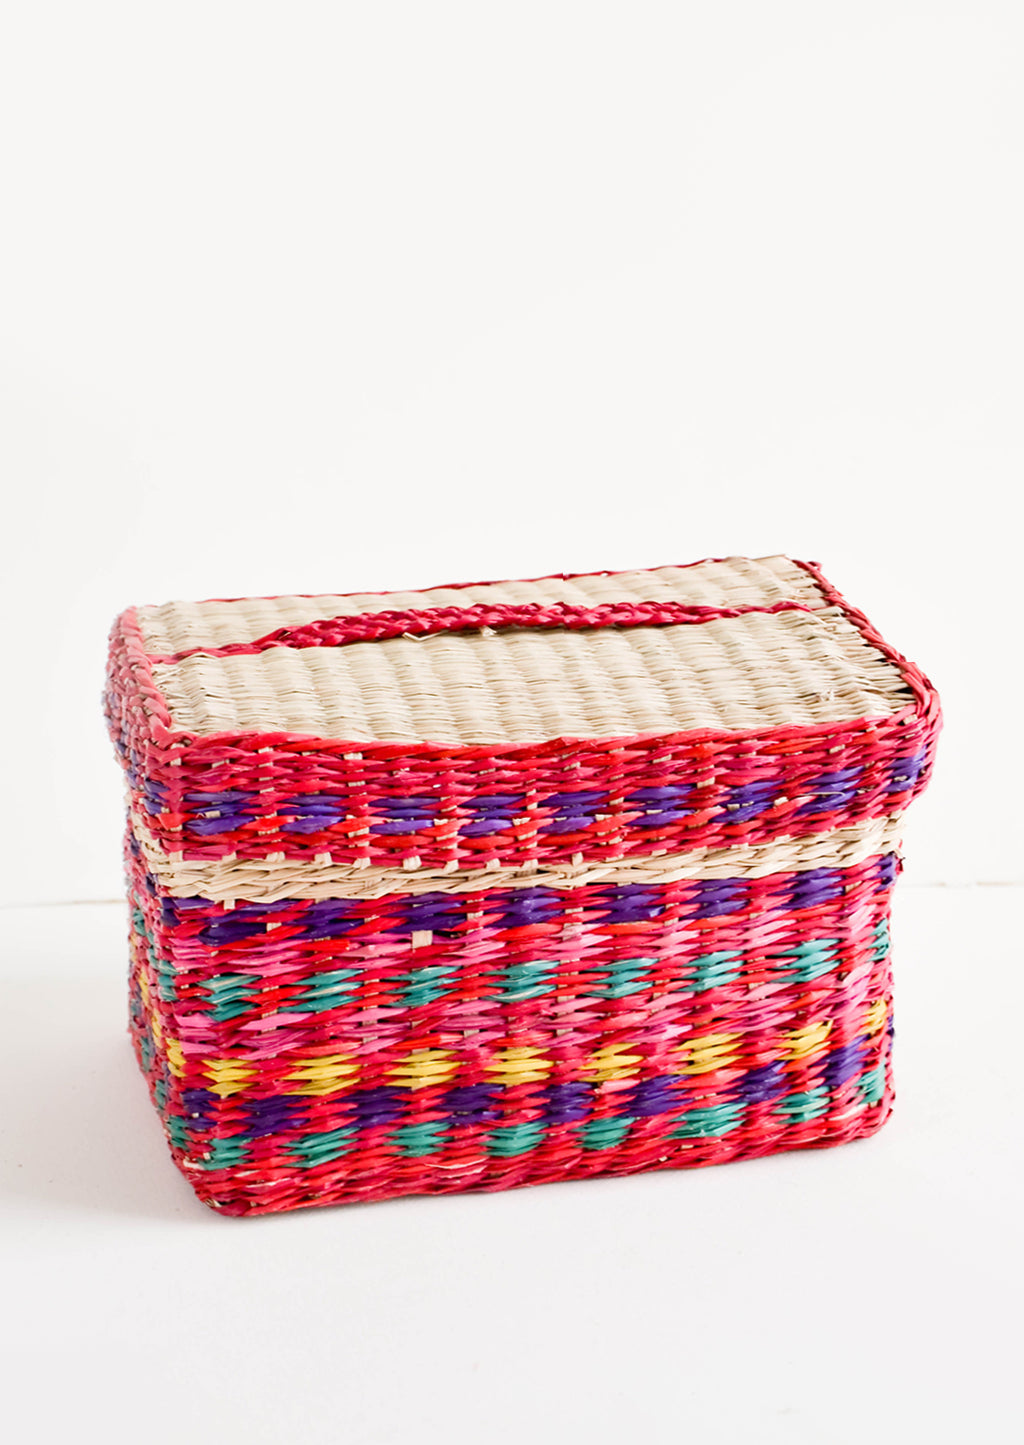 Red / Multicolor: Rectangular woven straw basket in natural color with red multicolor stripe detailing, with matching lid